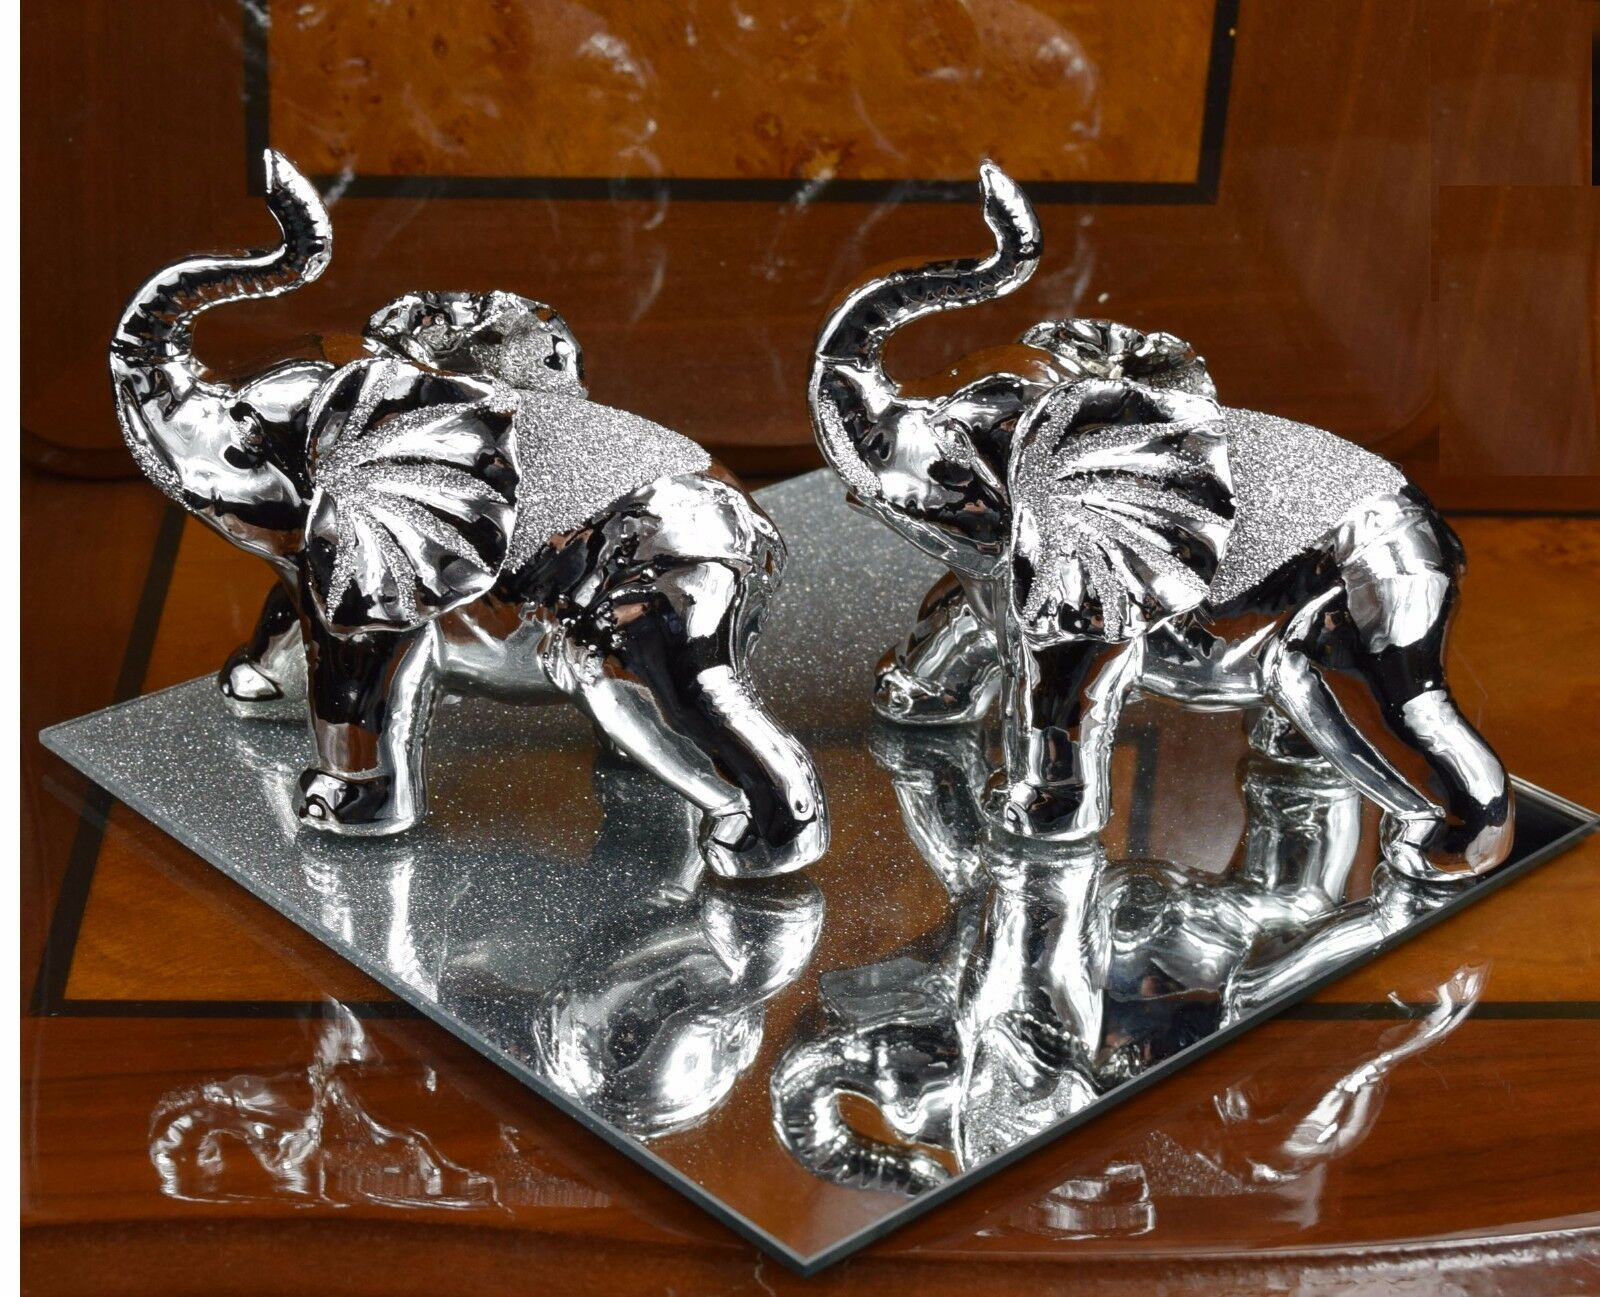 Pair of italian silver chrome elephant home decor ornament wedding birthday gift Silver elephant home decor